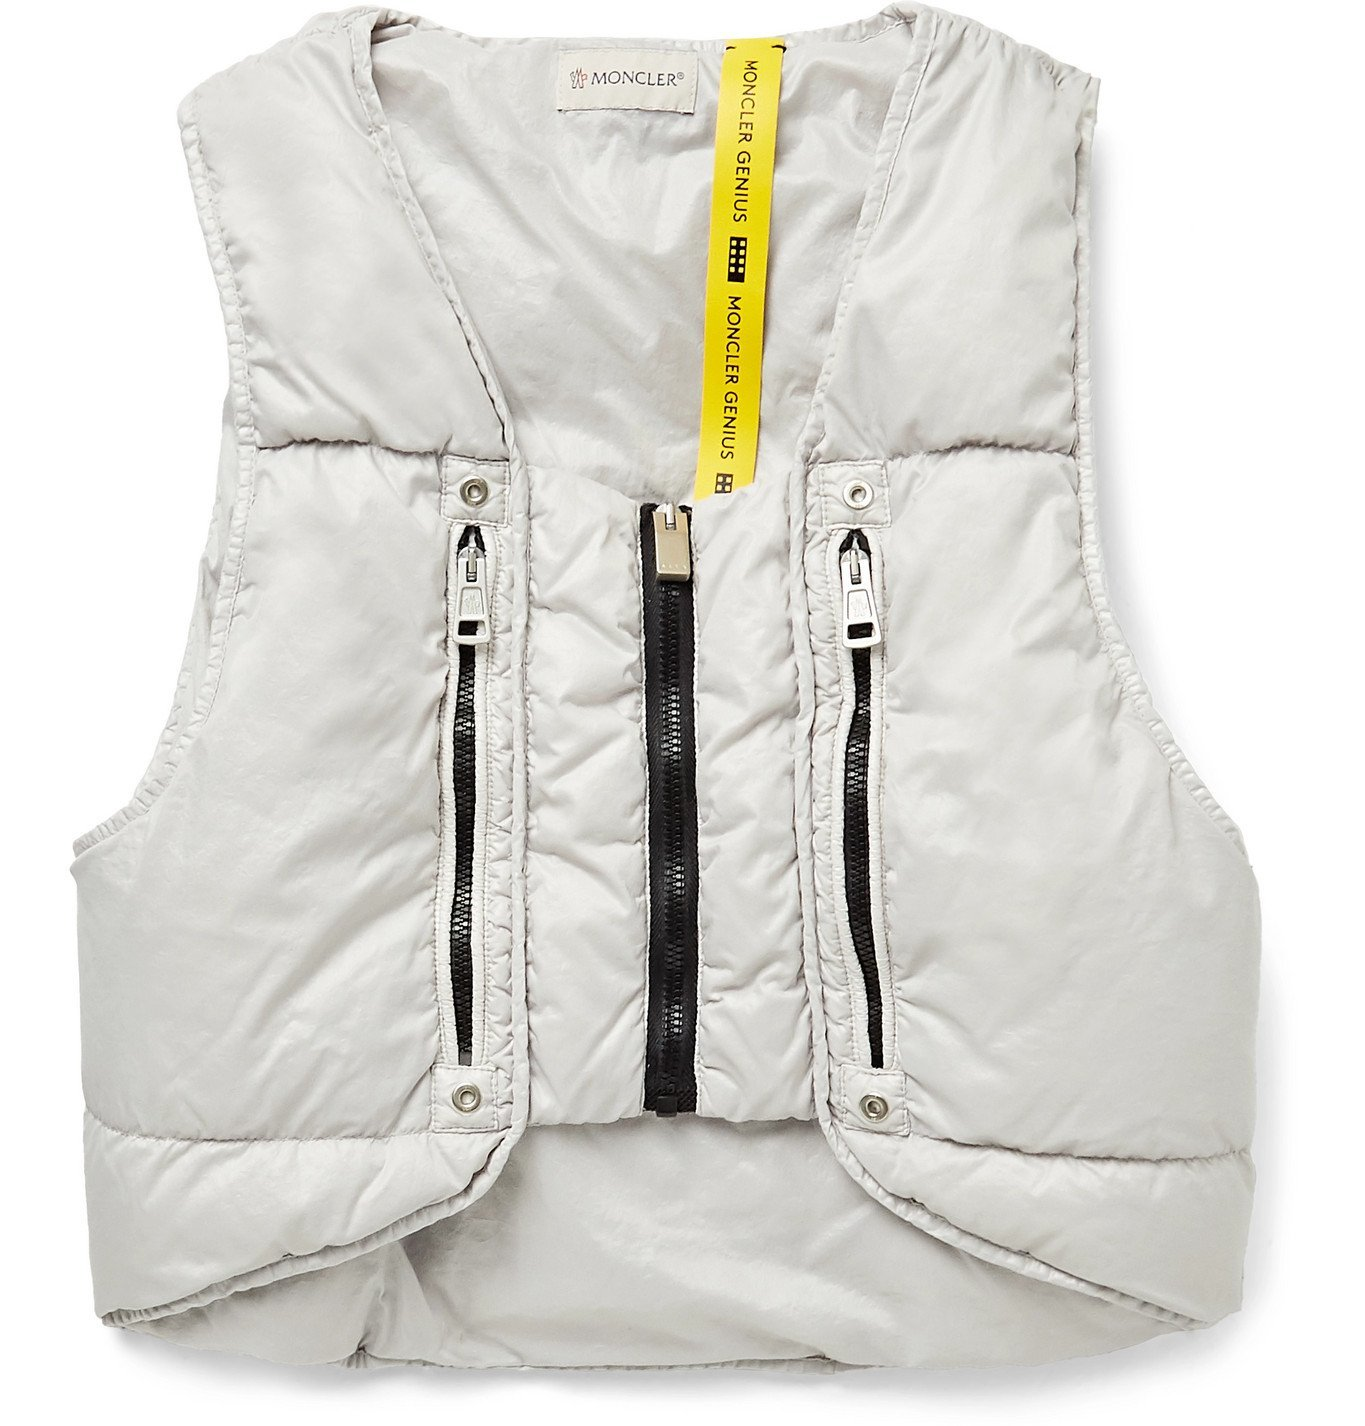 Photo: Moncler Genius - 6 Moncler 1017 ALYX 9SM Pettorina Quilted Nylon Down Gilet - Gray